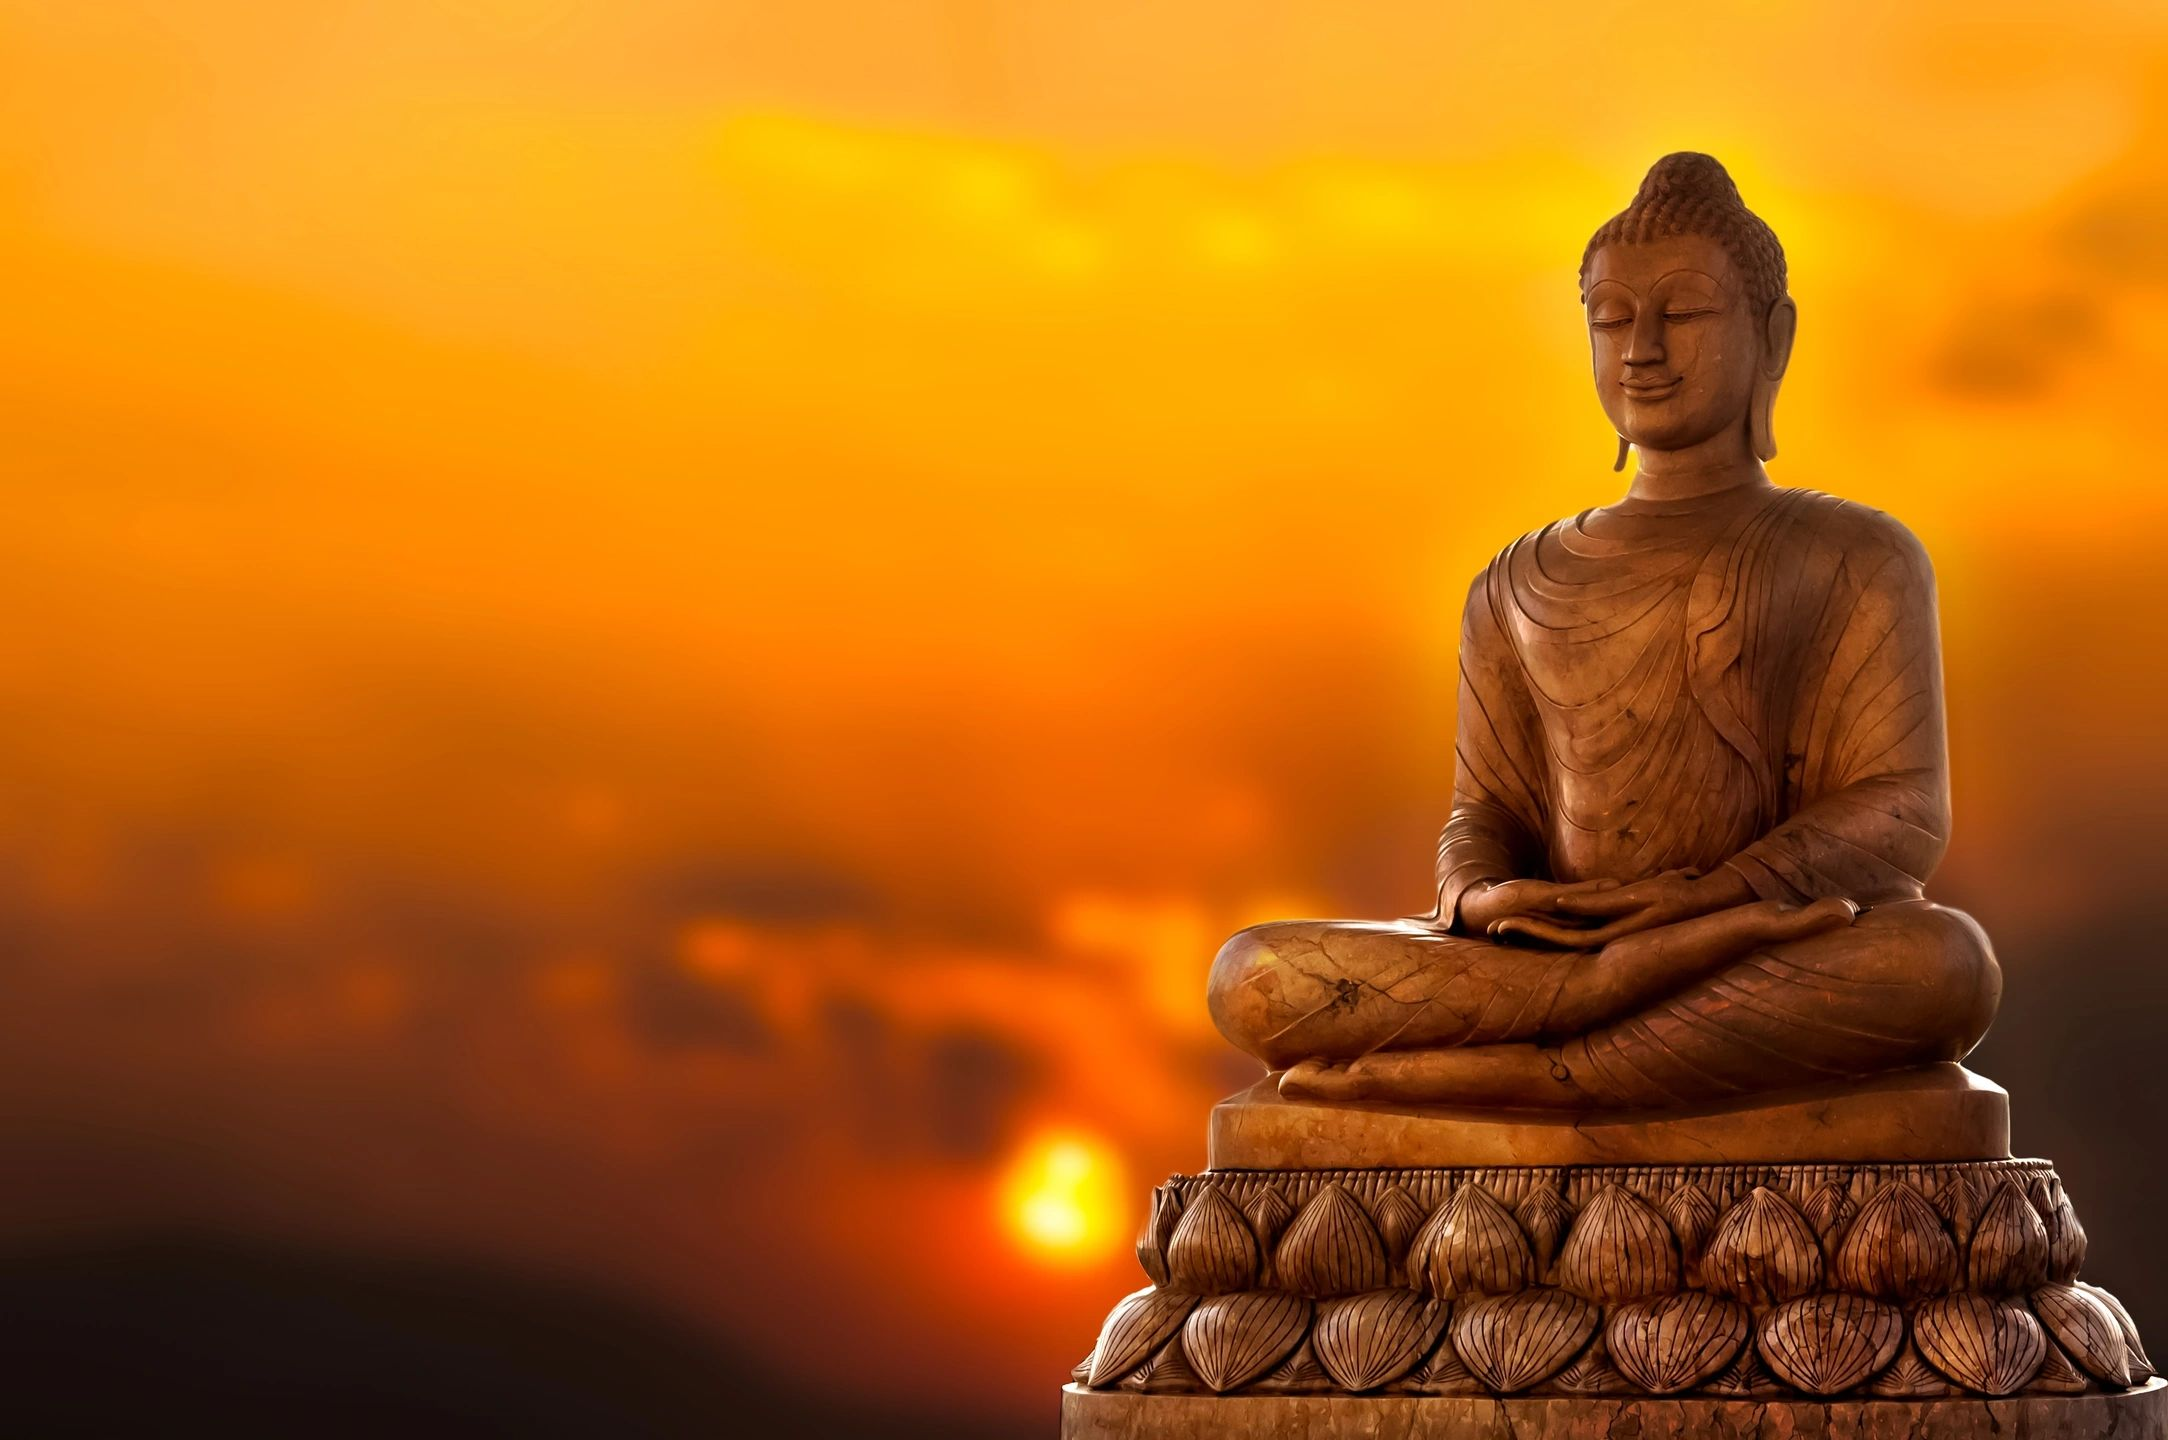 golden Buddha meditating on lotus leaves with a sunset behind him